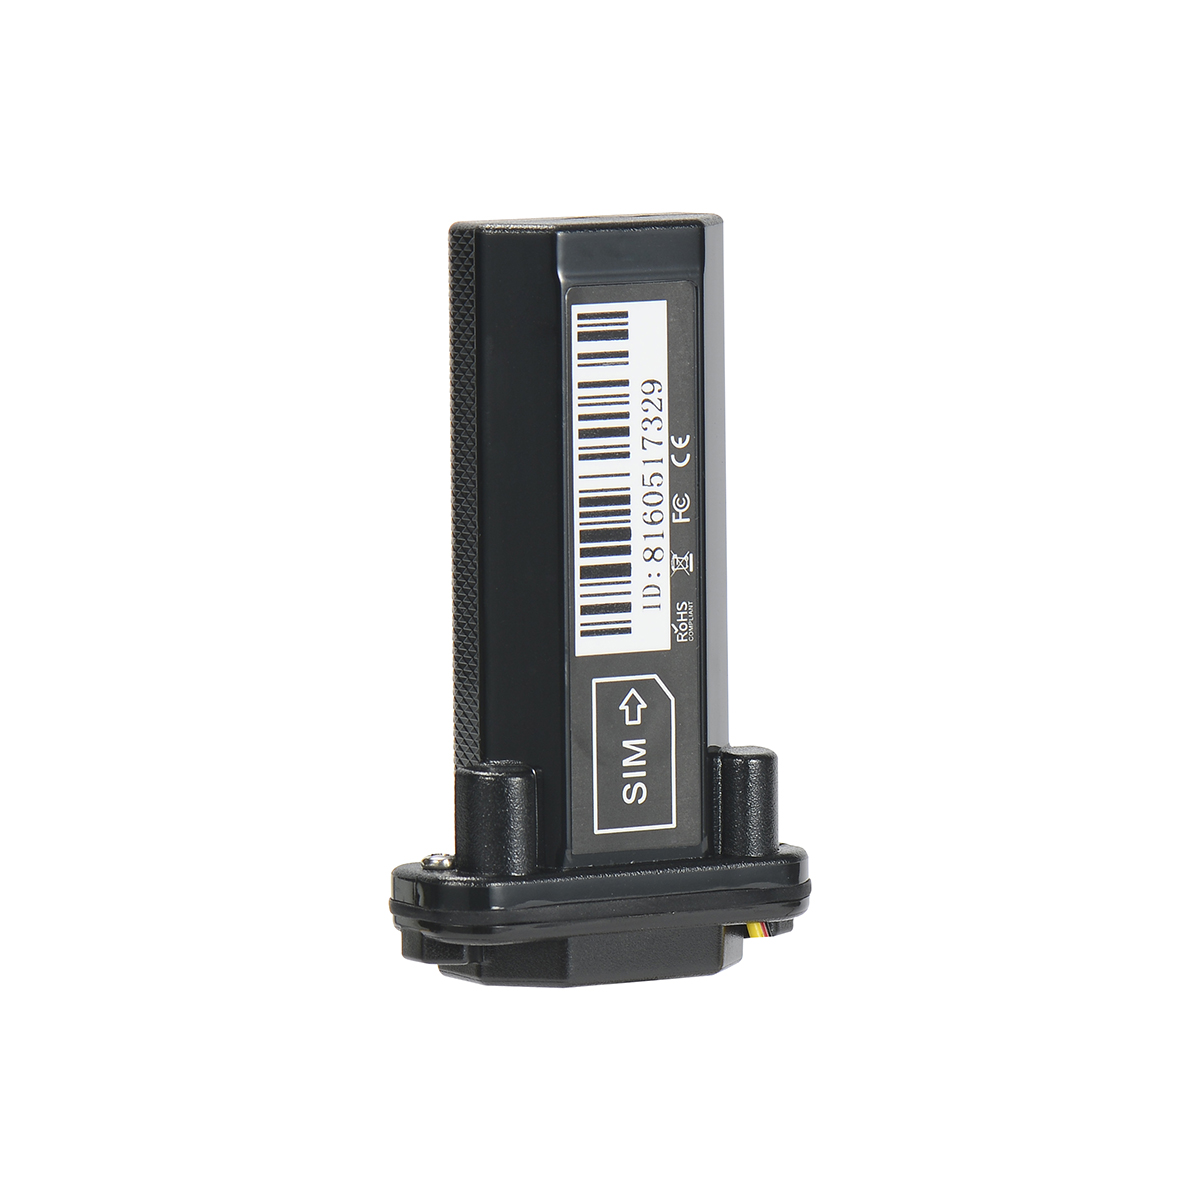 Mini Built In Battery GSM <font><b>GPS</b></font> Tracker ST-<font><b>901</b></font> 3G WCDMA Device Waterproof With Online Tracking Software For Car Motorcycle Vehicle image